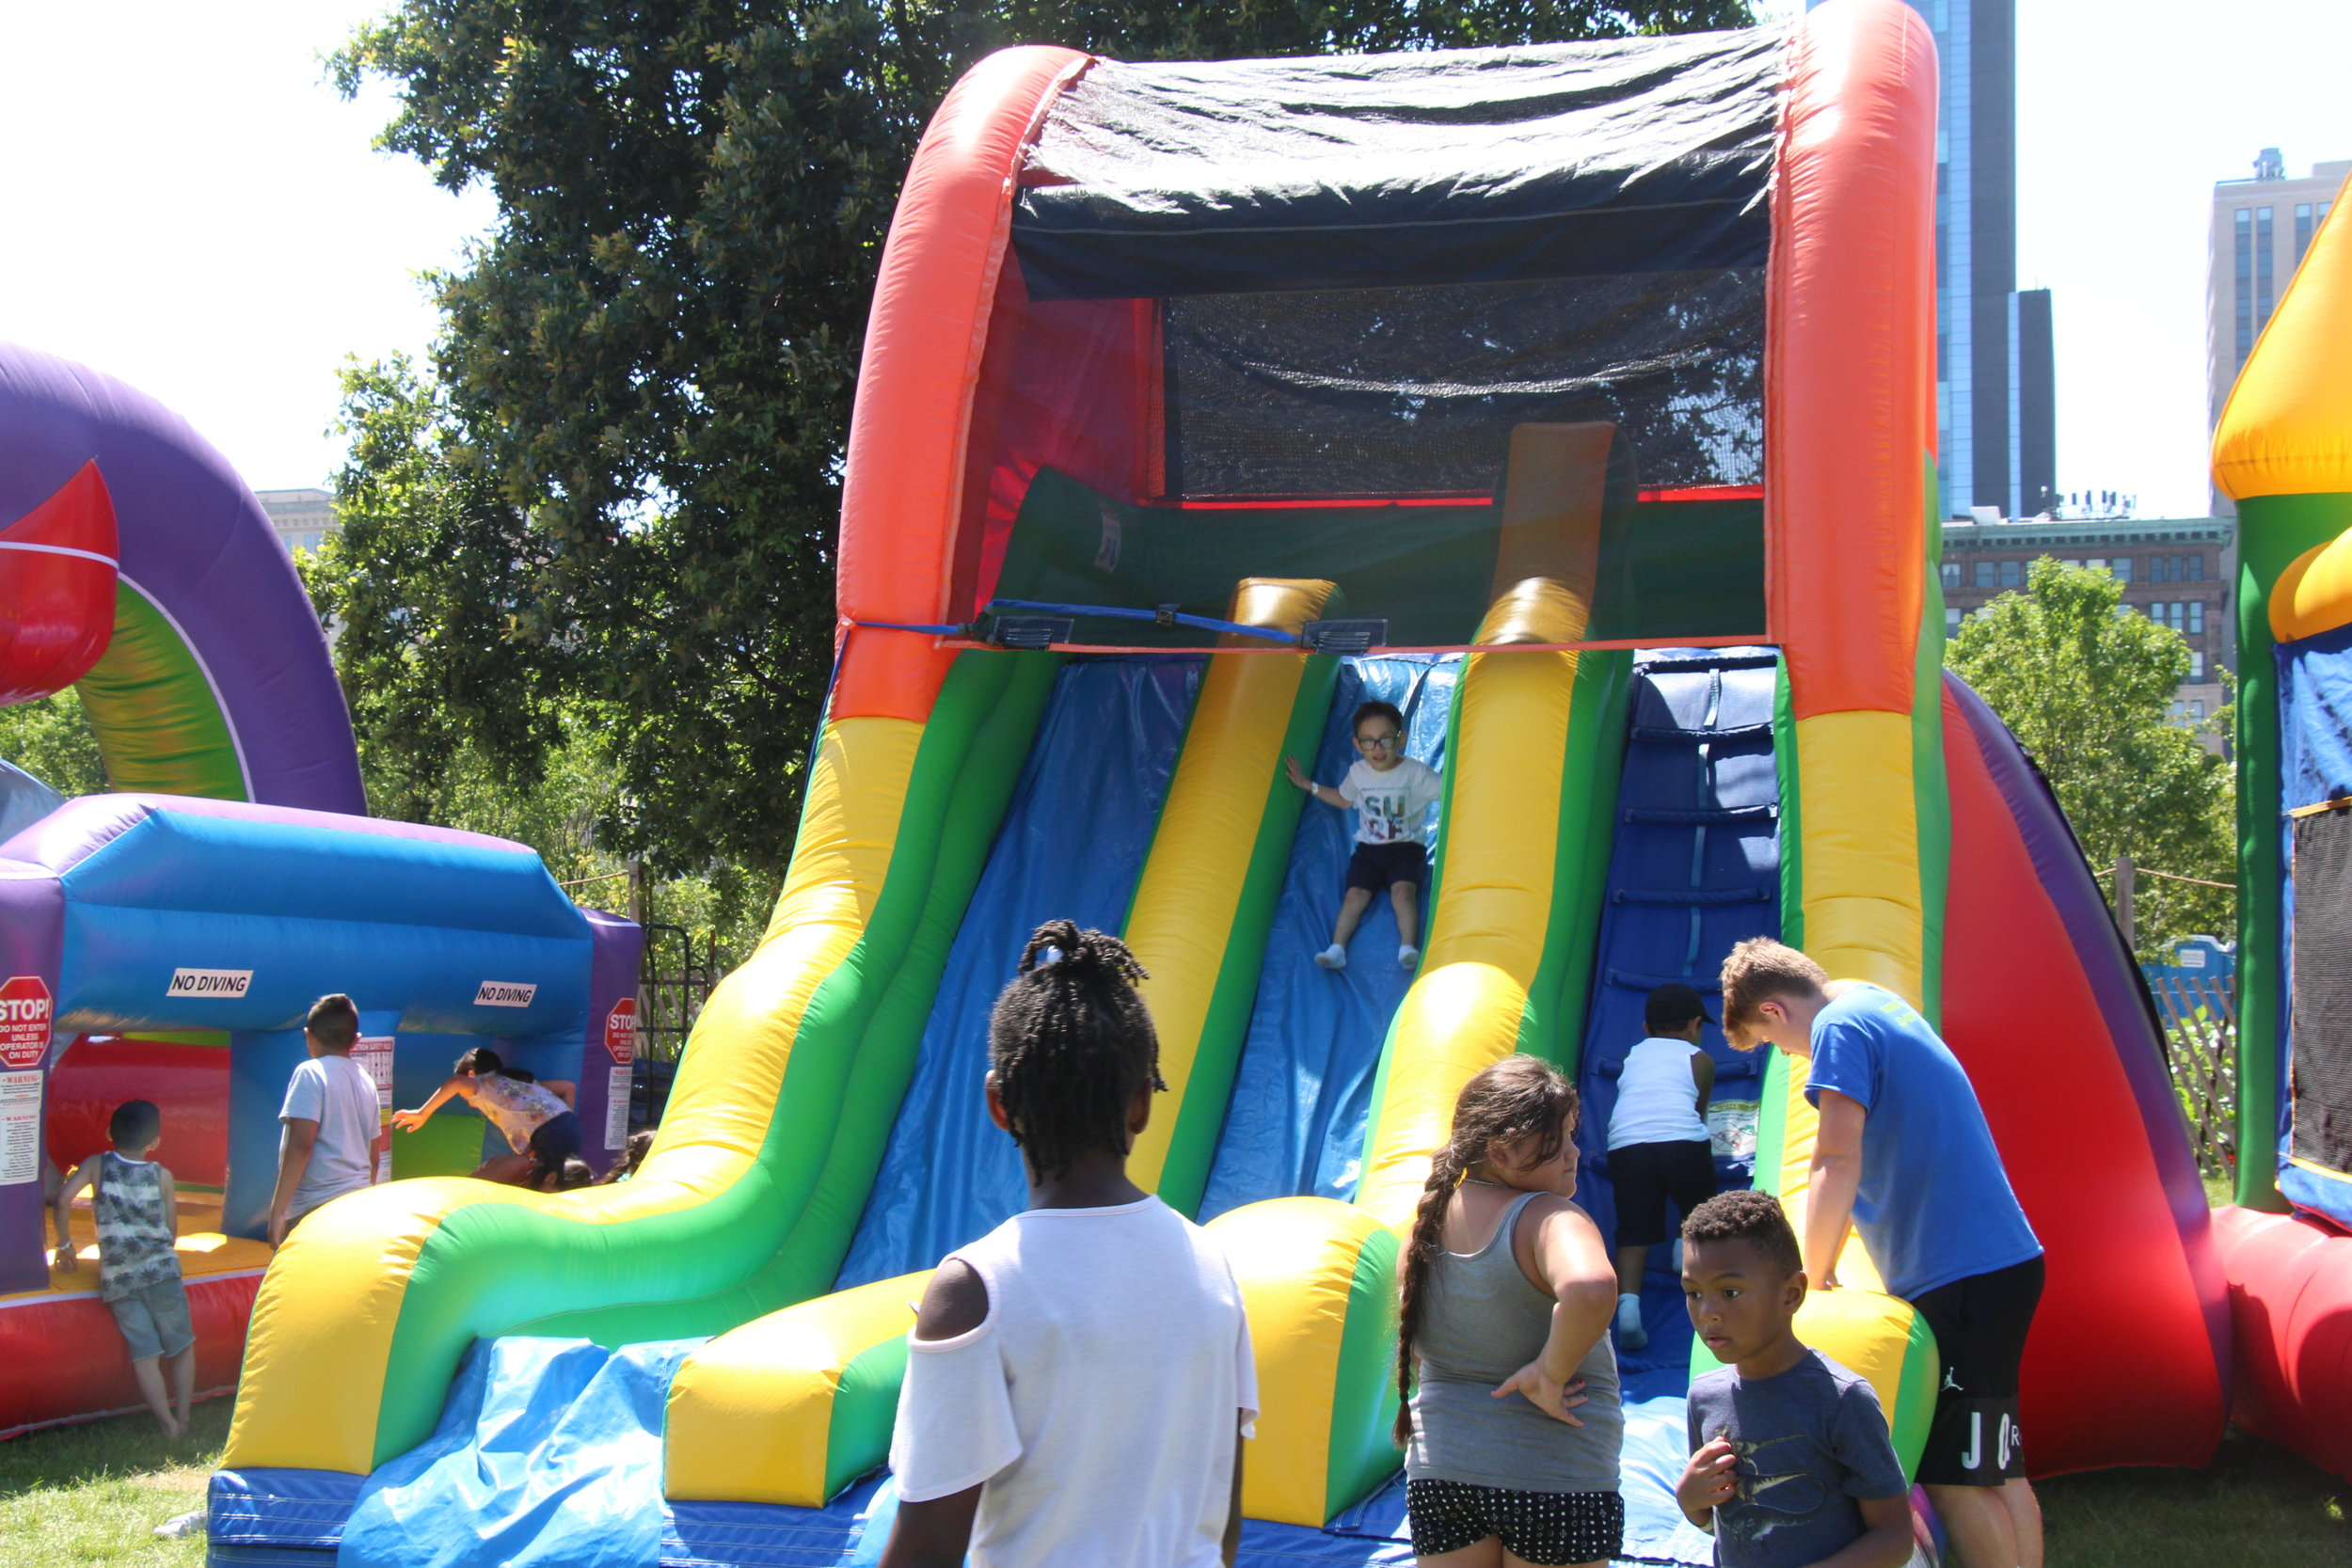 Kids enjoying a fun time on inflatables. Photo by Tyrese Pough